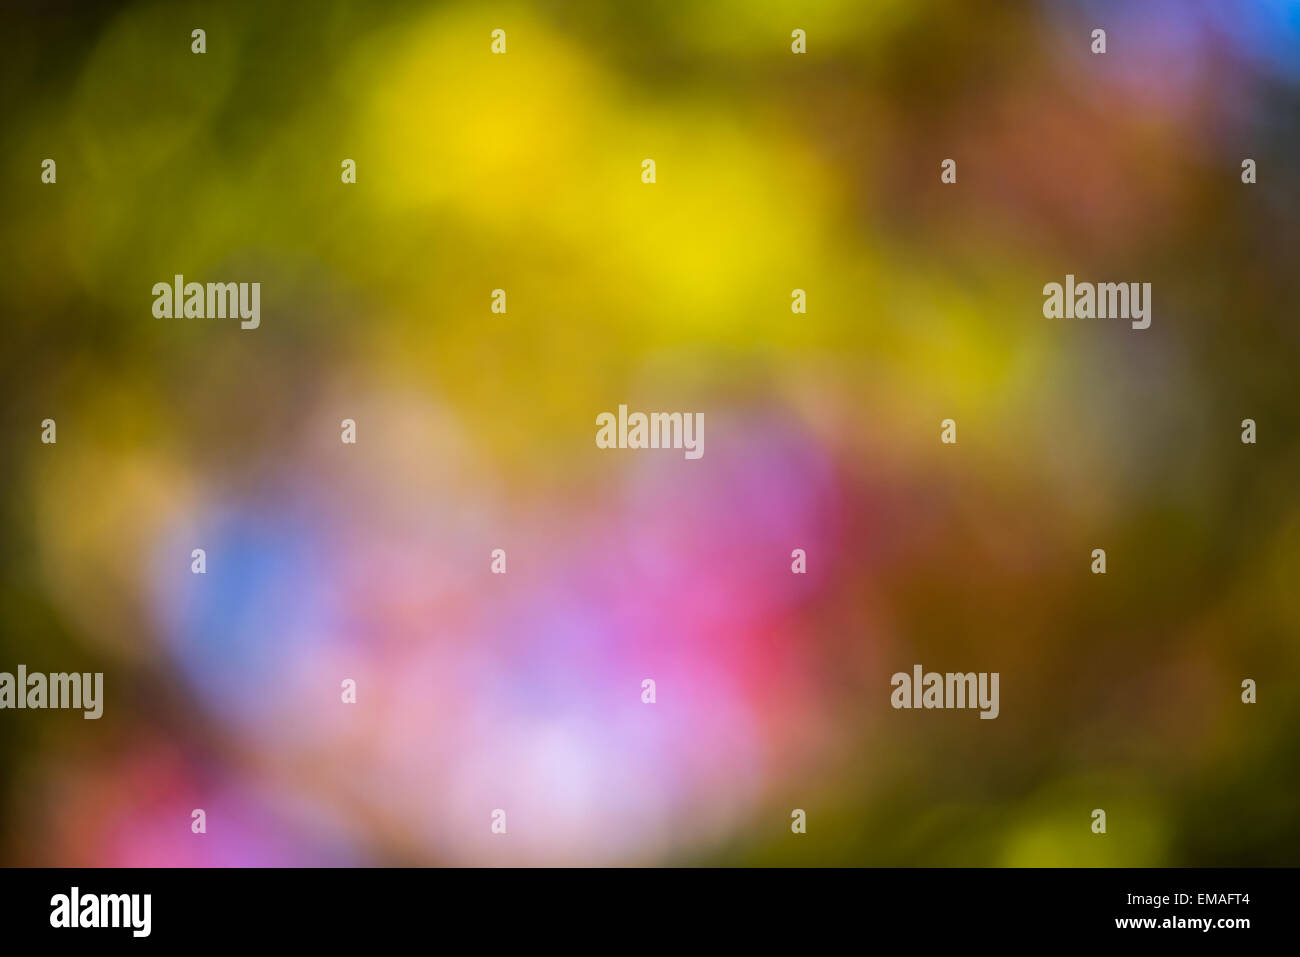 Colorful background with defocused lights - Stock Image